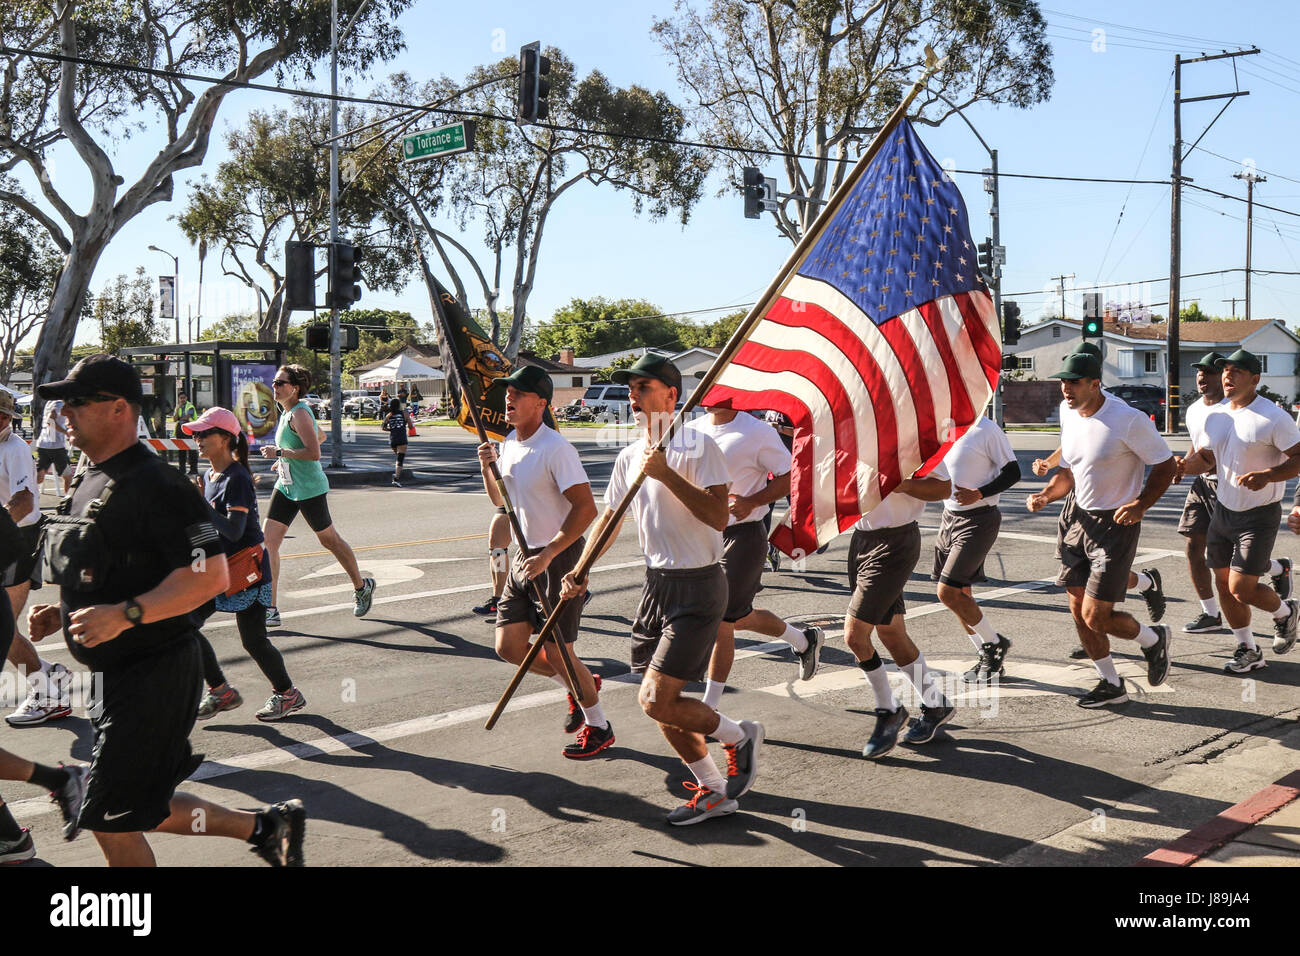 TORRANCE, Calif  – Cadets from the Torrance Police Academy